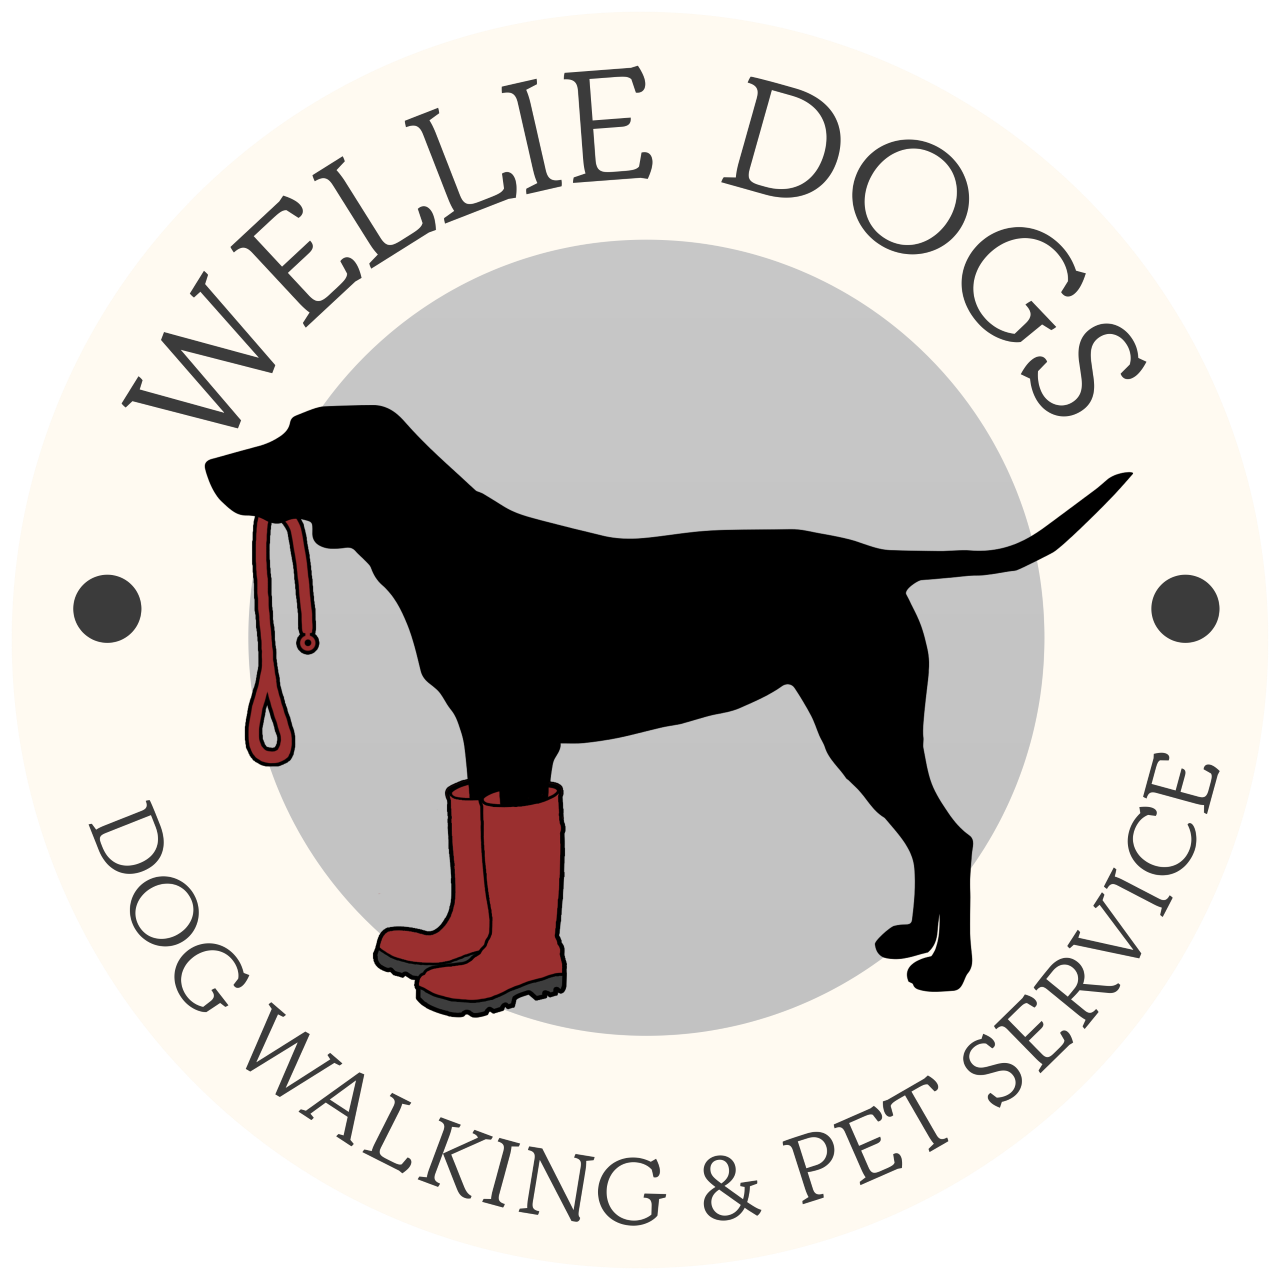 WellieDogsWalks